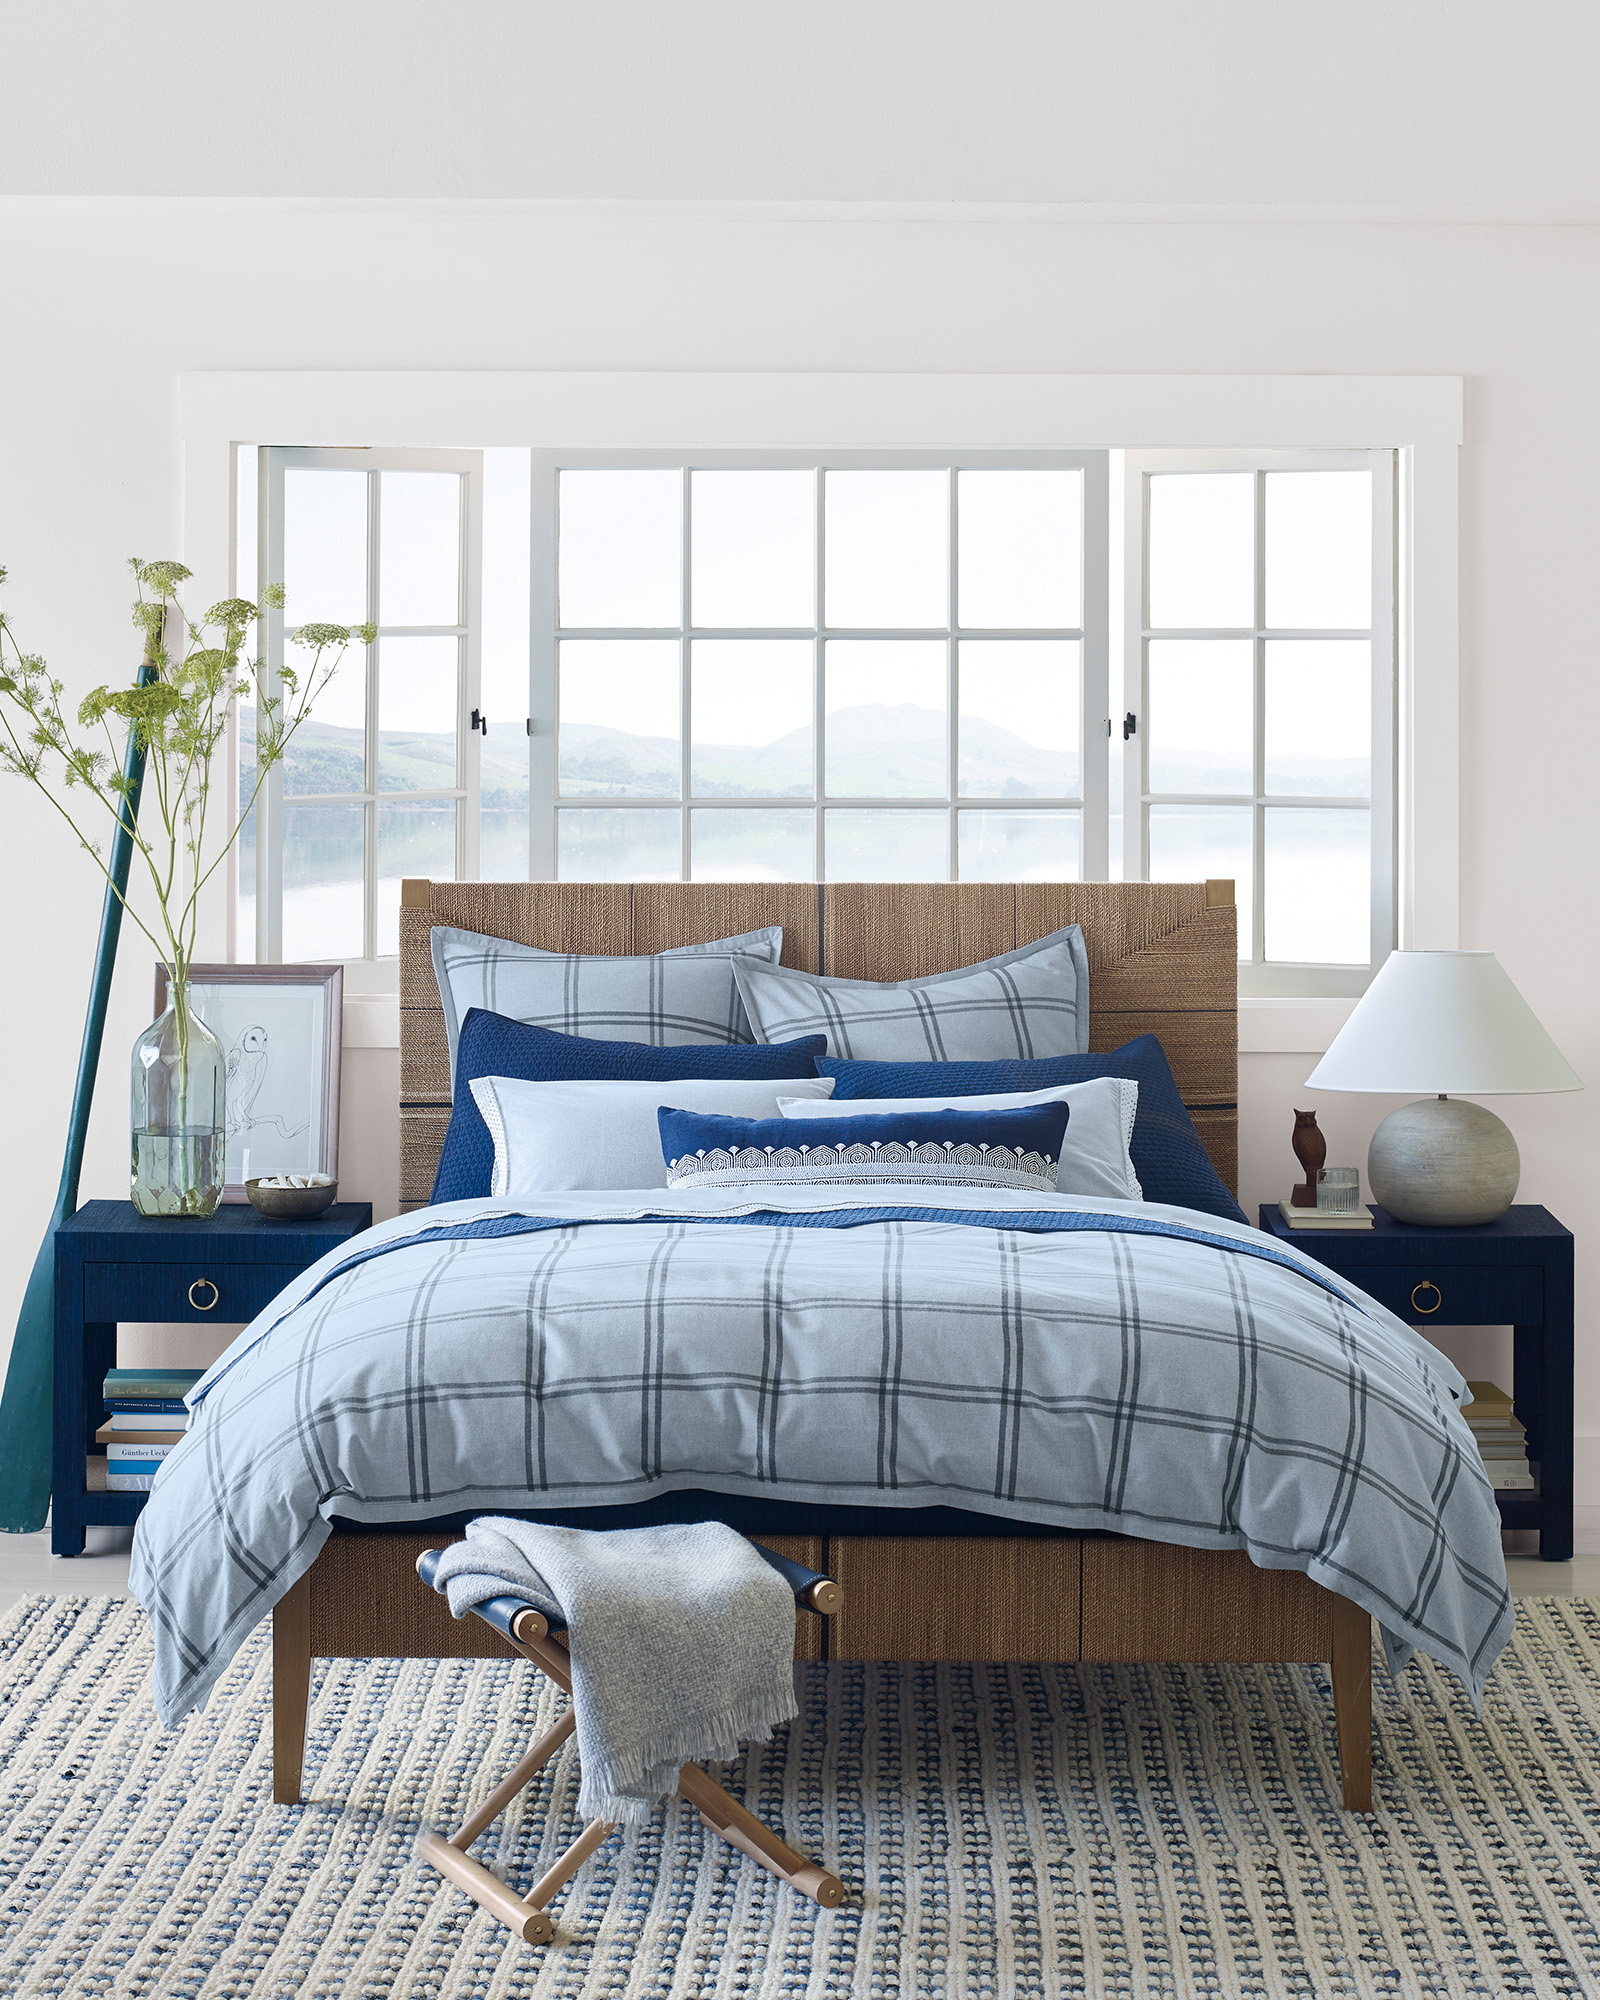 Classic coastal bedroom with blue windowpane plaid bedding - Serena & Lily.